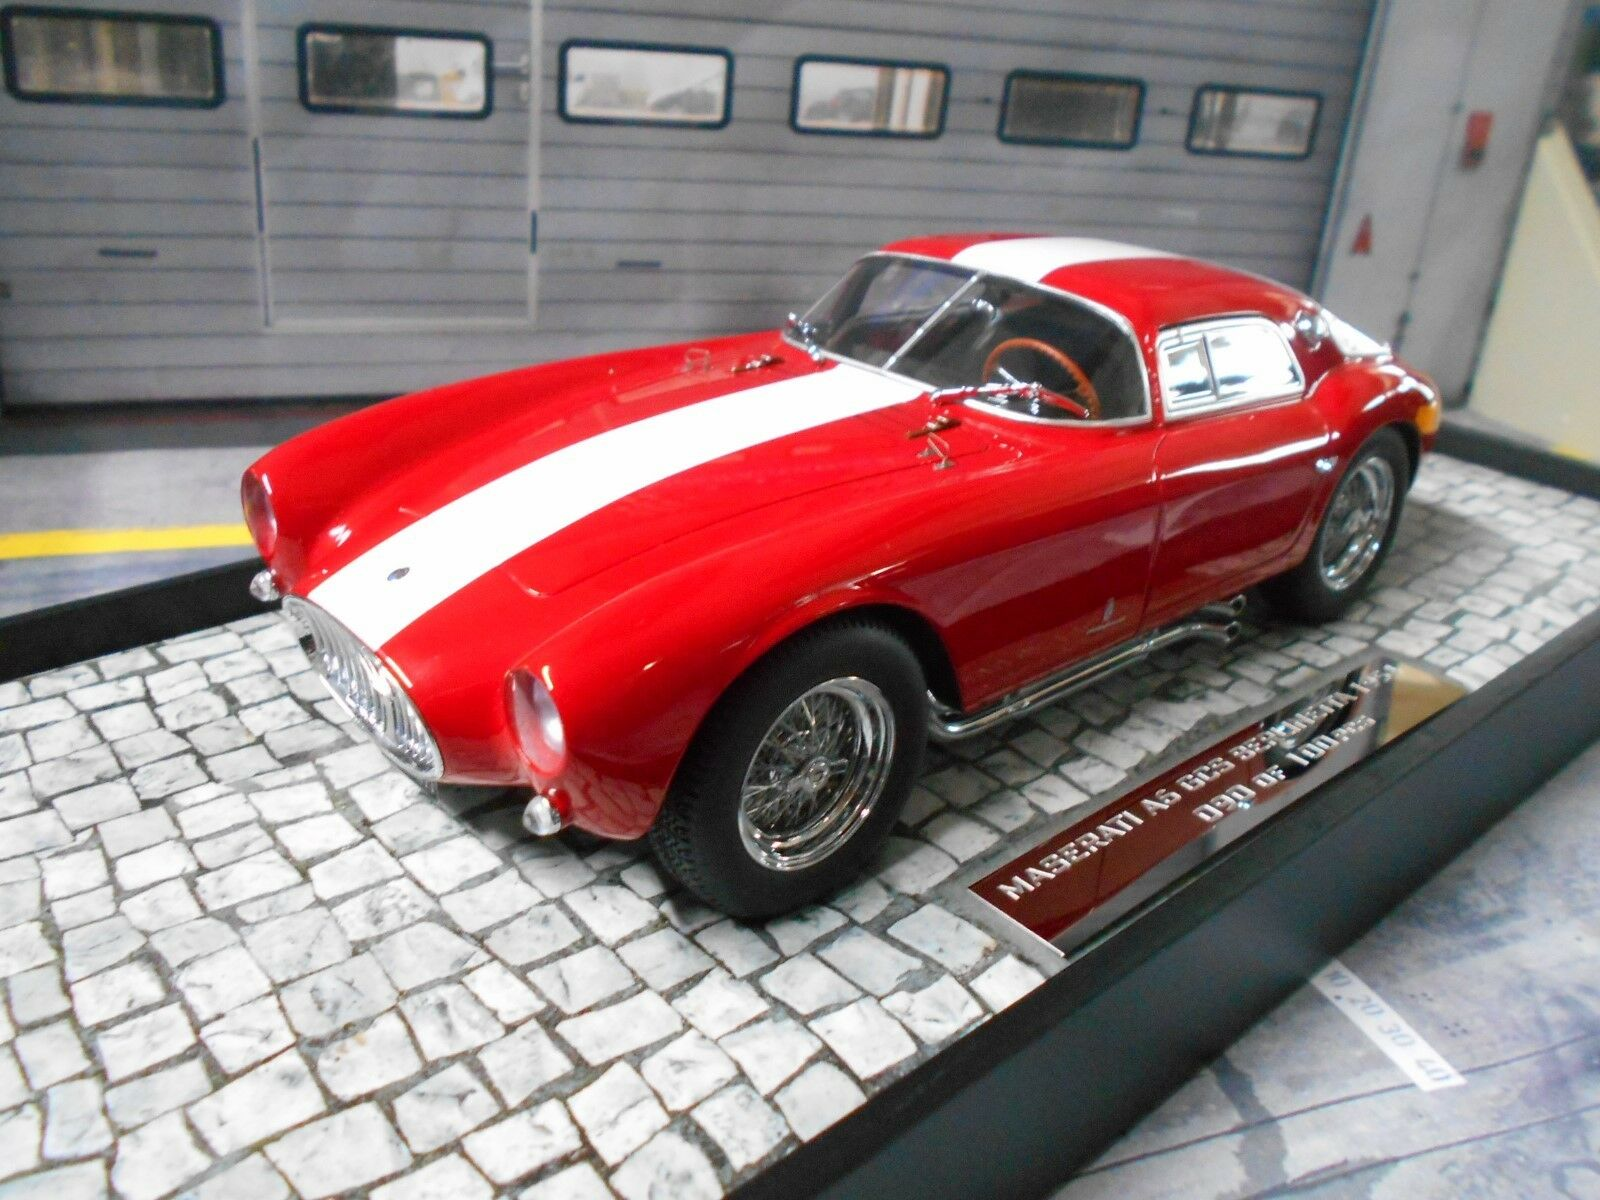 MASERATI a6gcs a6 COUPE 1954 rosso bianca  STRIPES resin highenddet Minichamps 1:18